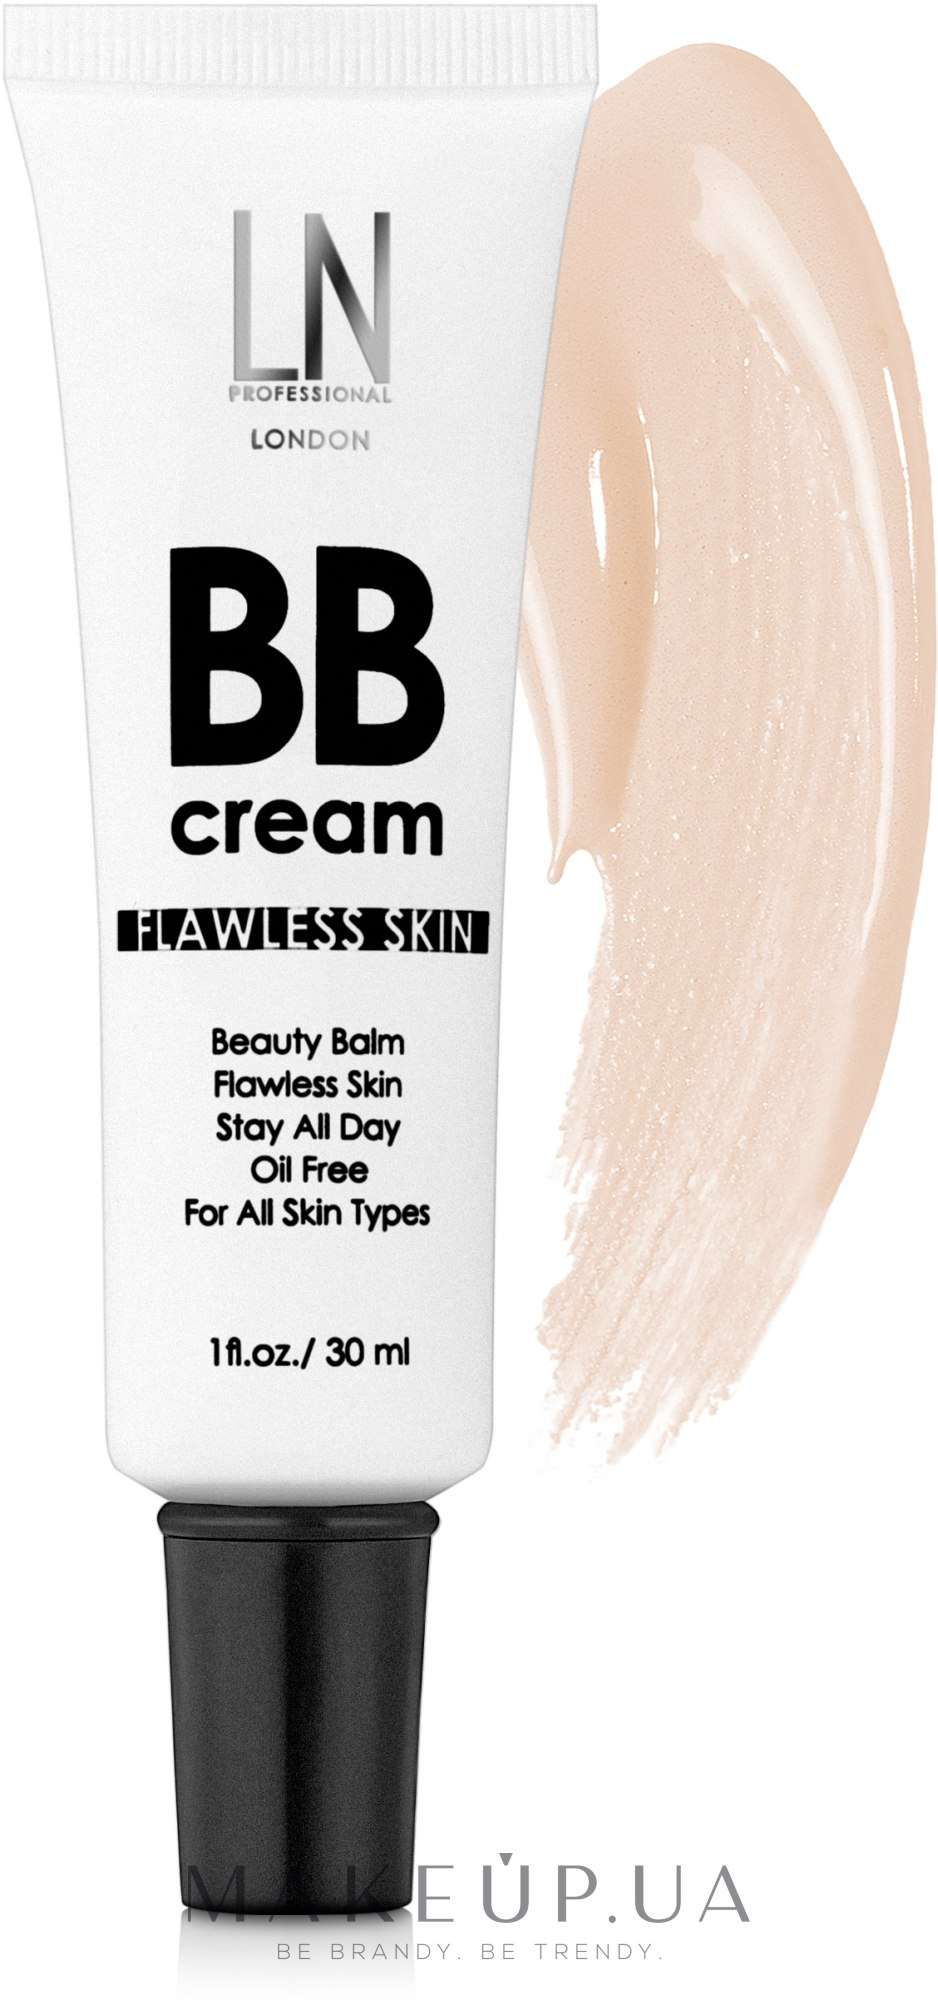 Тональный крем для лица - LN Professional BB Cream Flawless Skin — фото 001 - Light Beige